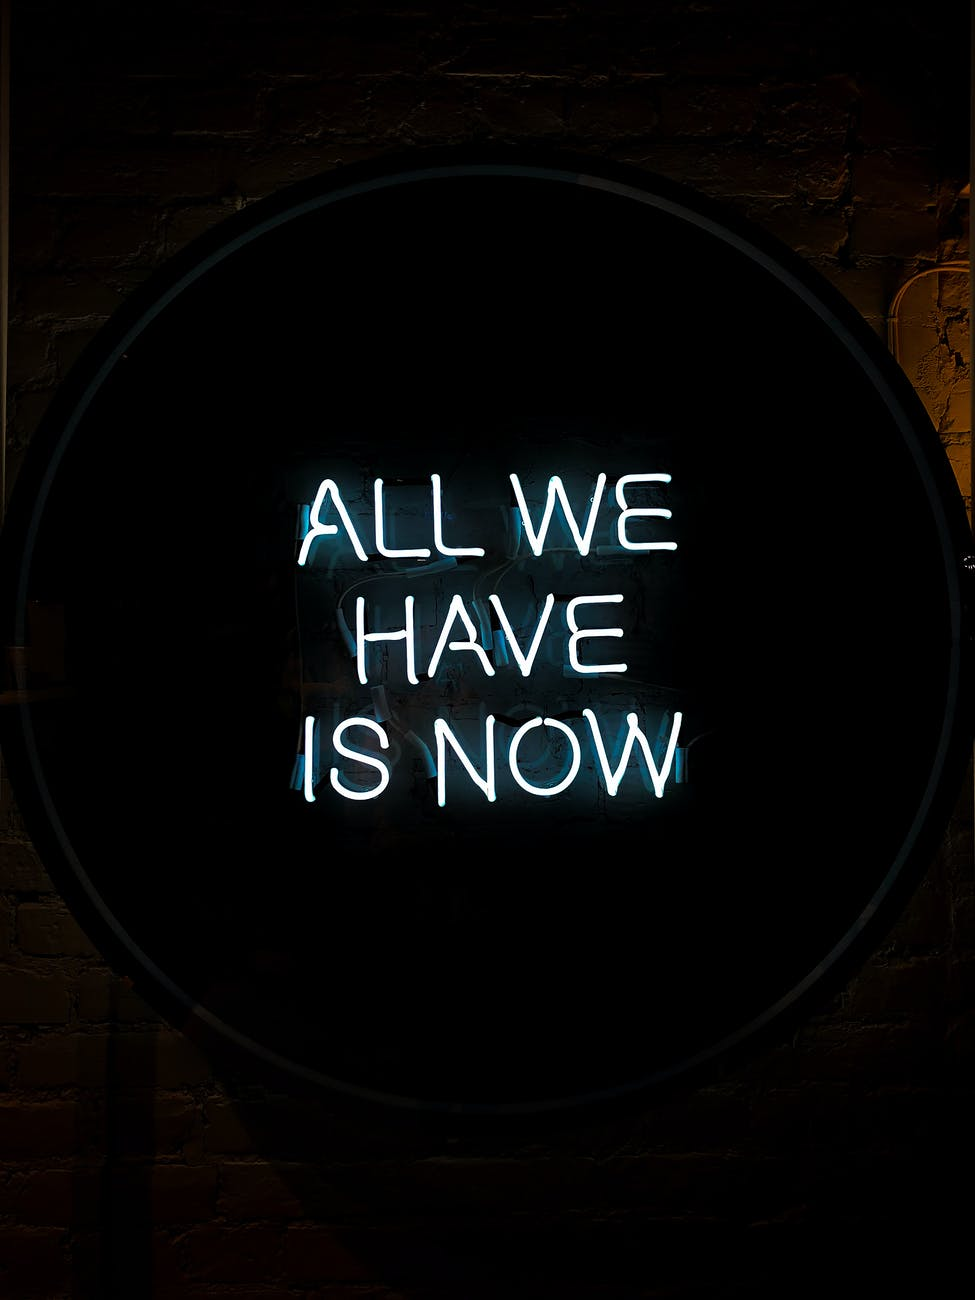 all we have is now neon signage on black surface